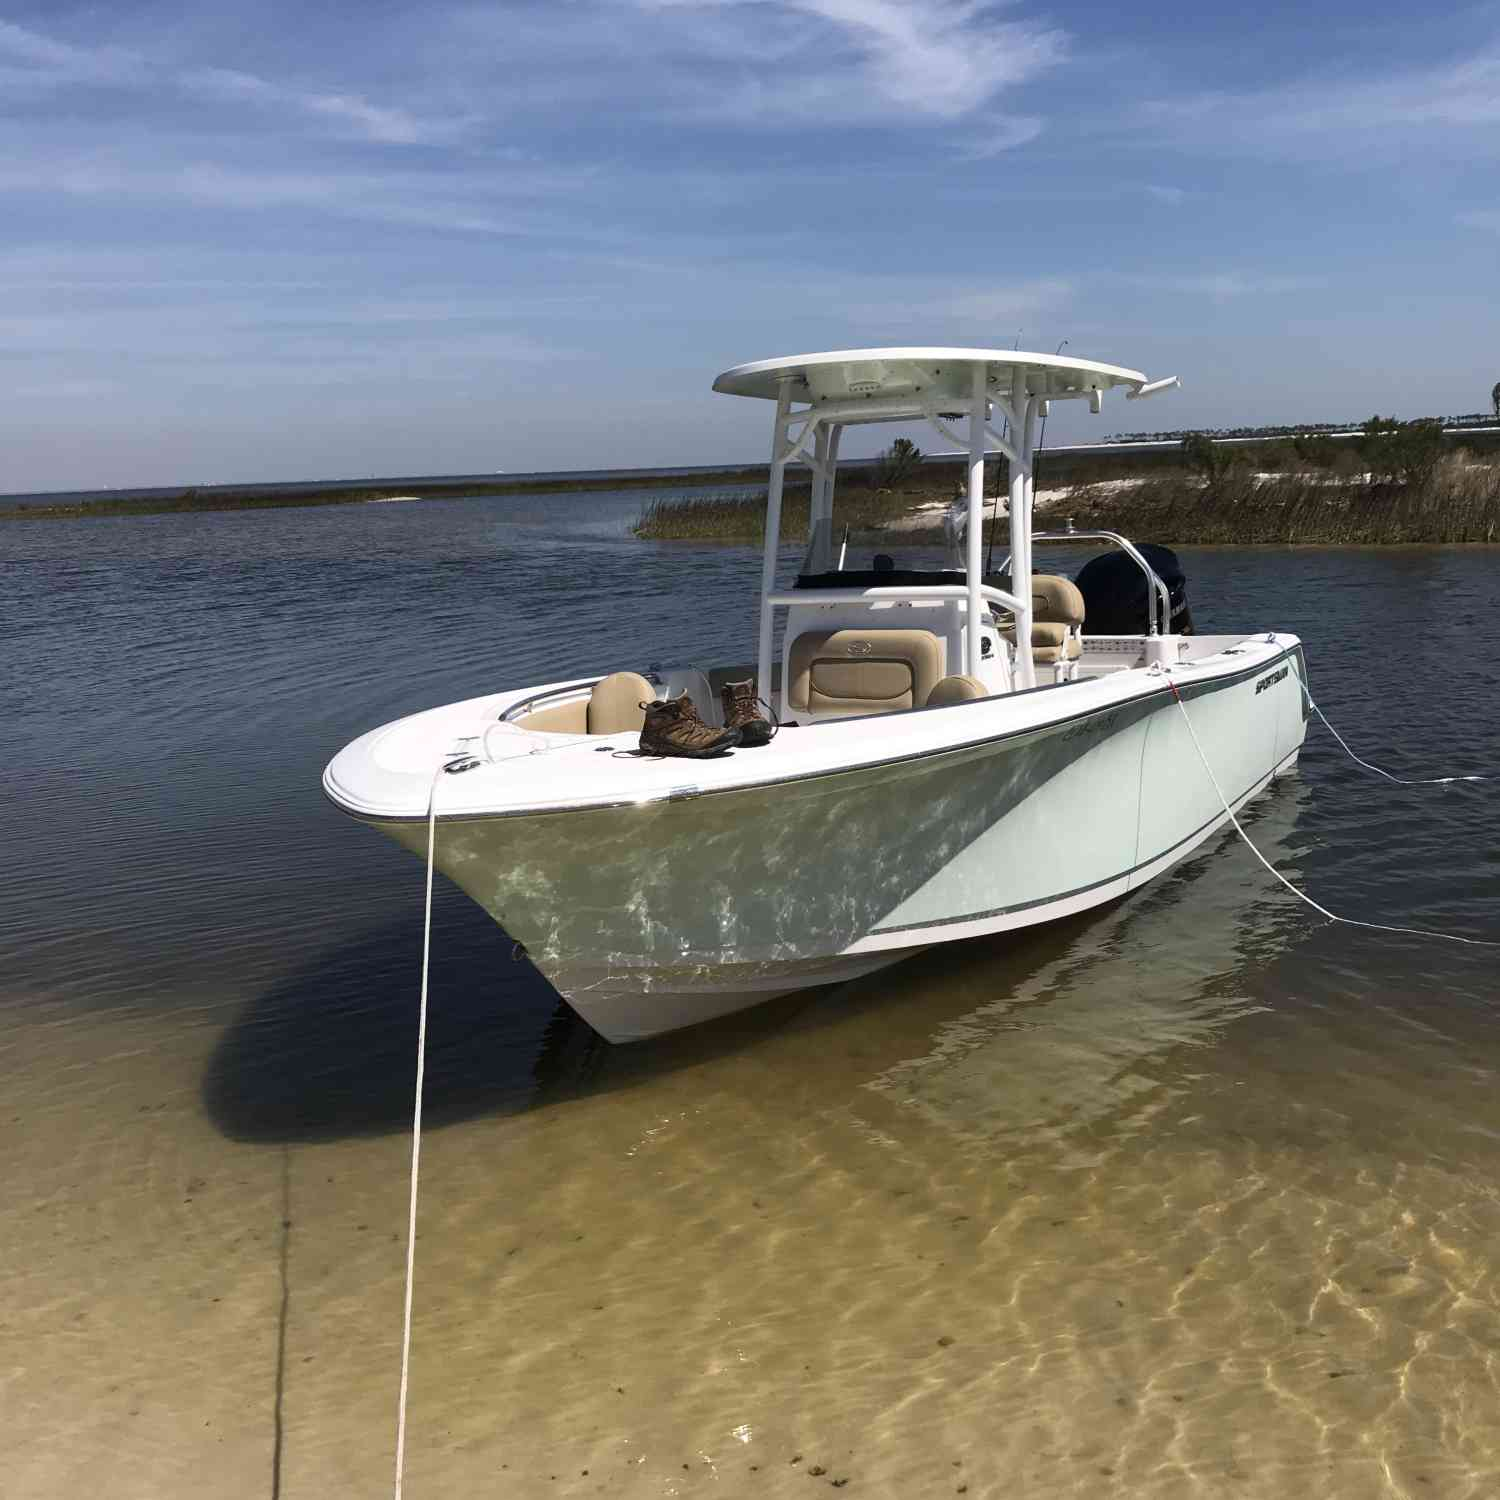 Title: Island hopping - On board their Sportsman Open 232 Center Console - Location: Cat island, MS. Participating in the Photo Contest #SportsmanAugust2018